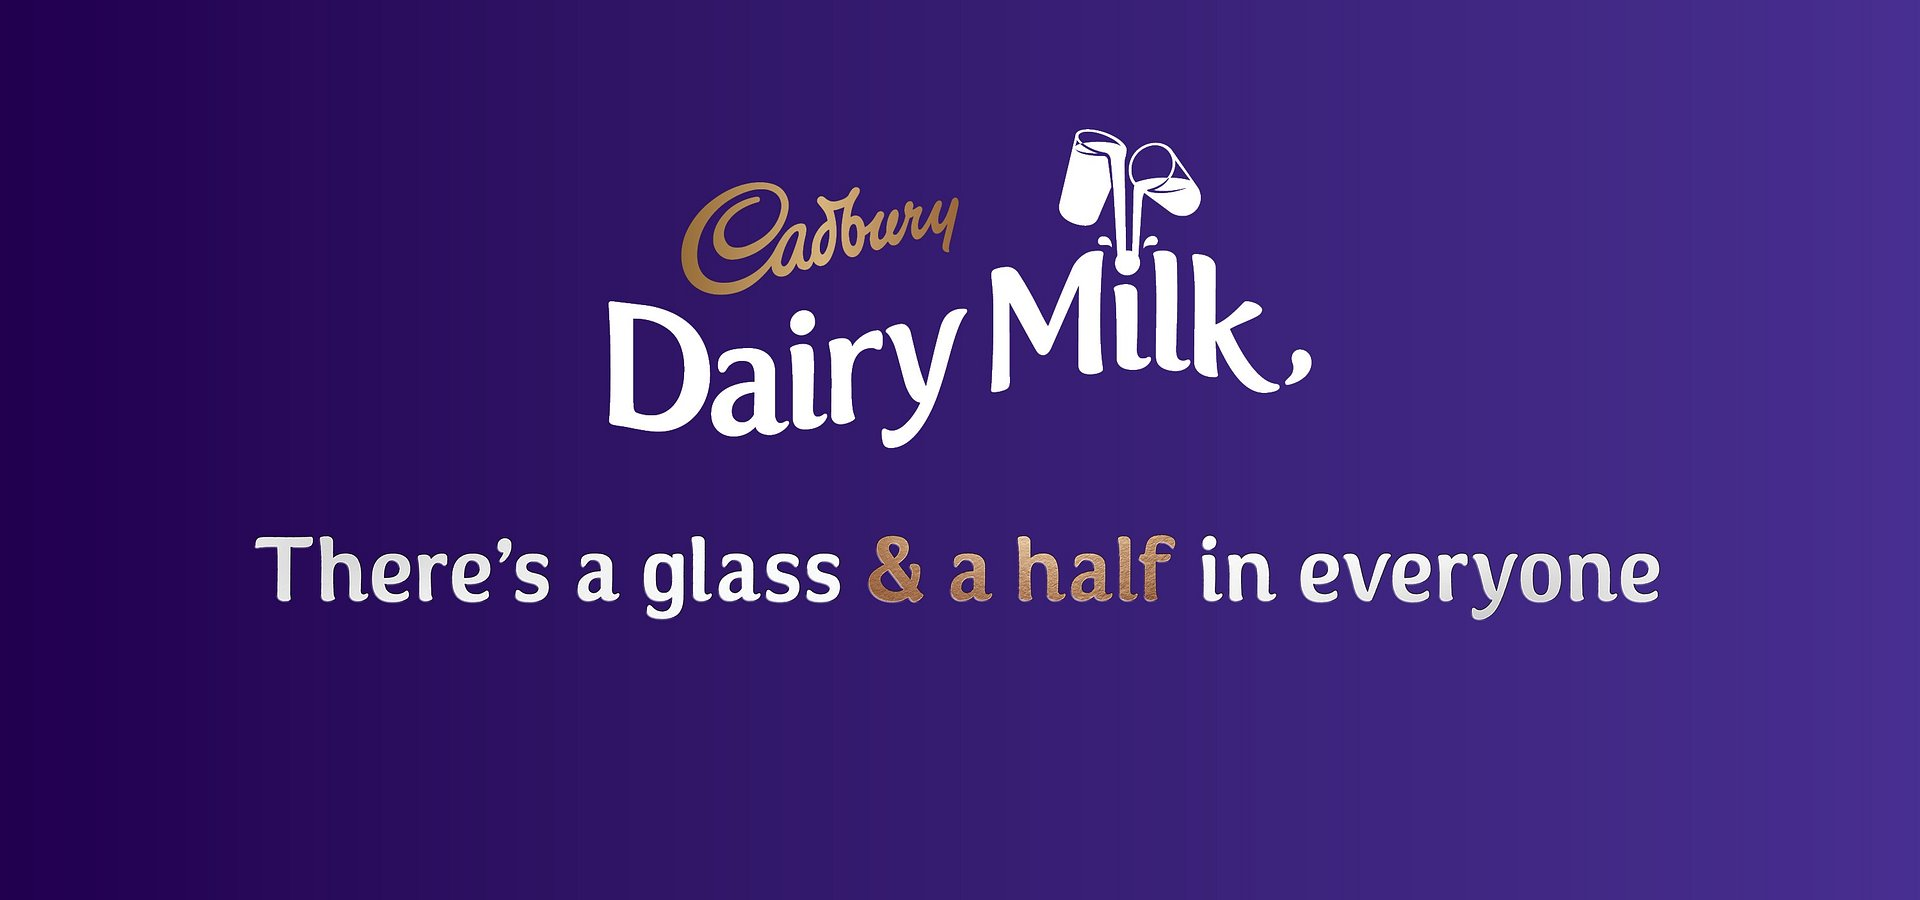 Cadbury Dairy Milk, There's a glass & a half of Generosity in everyone